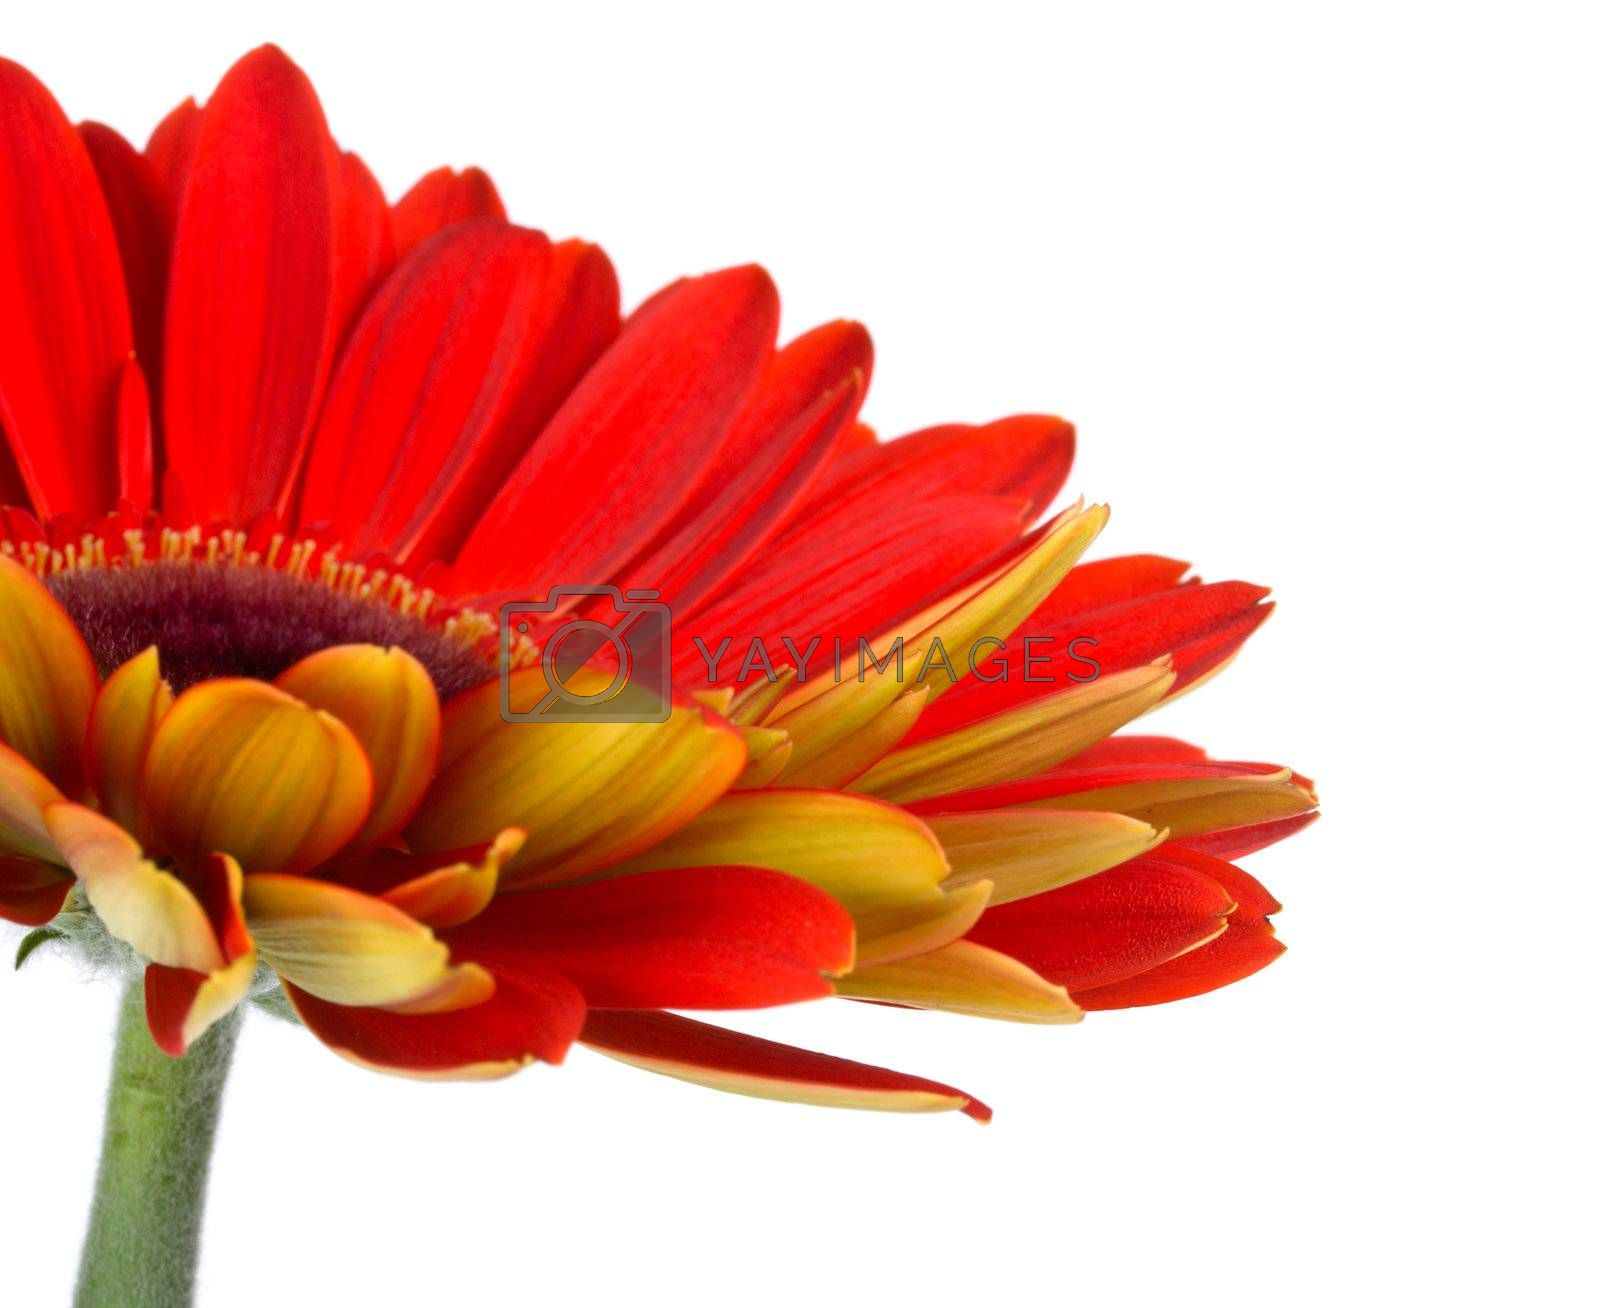 part of red gerbera flower, isolated on white